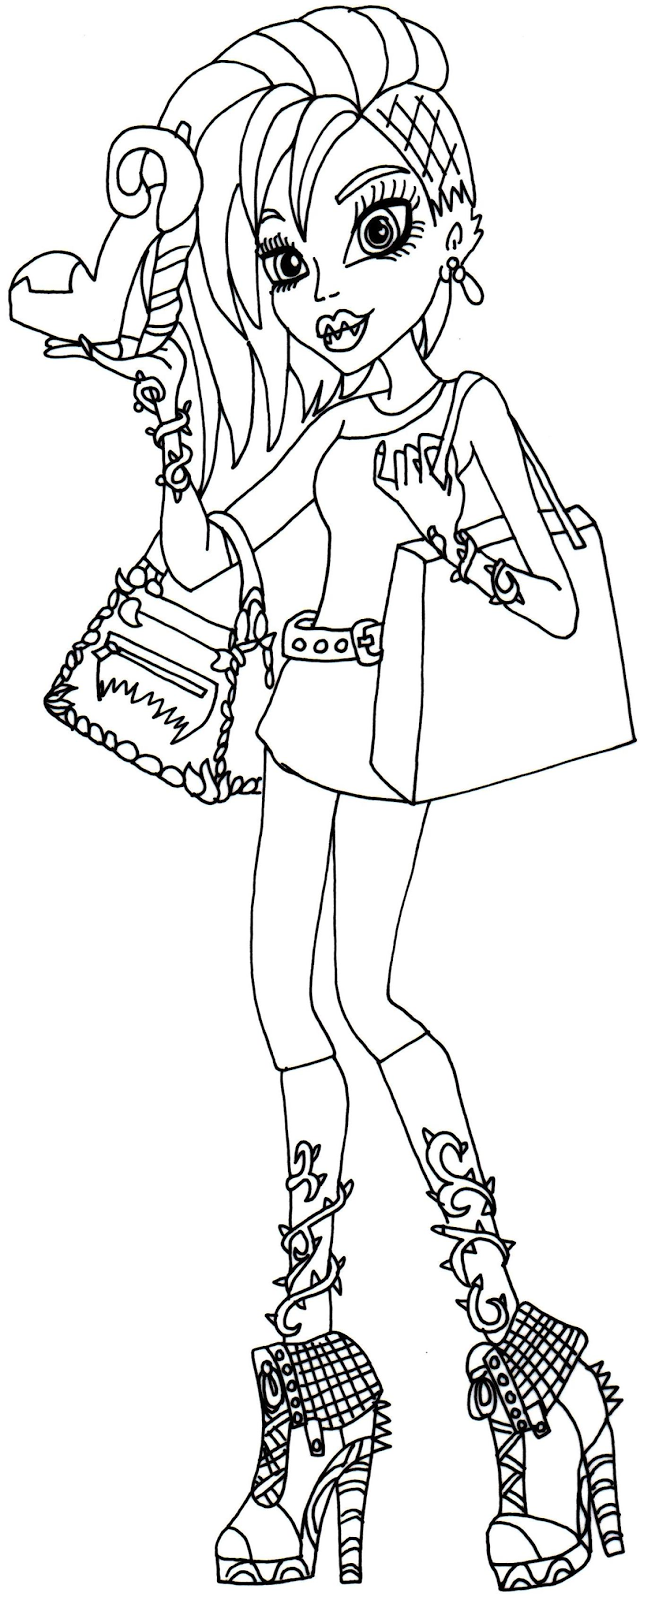 Simplicity image with regard to monster high coloring pages printable